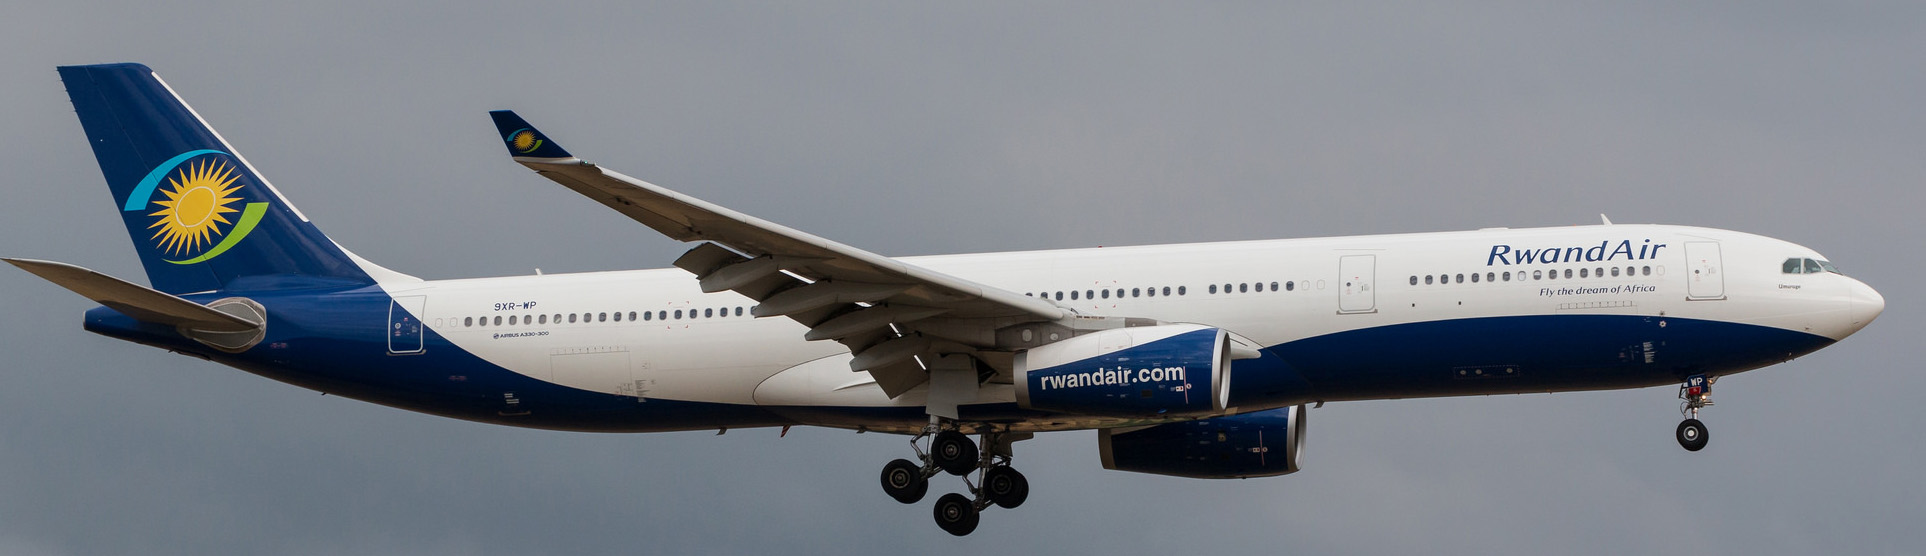 Rwandair Airbus A330-300 on final approach